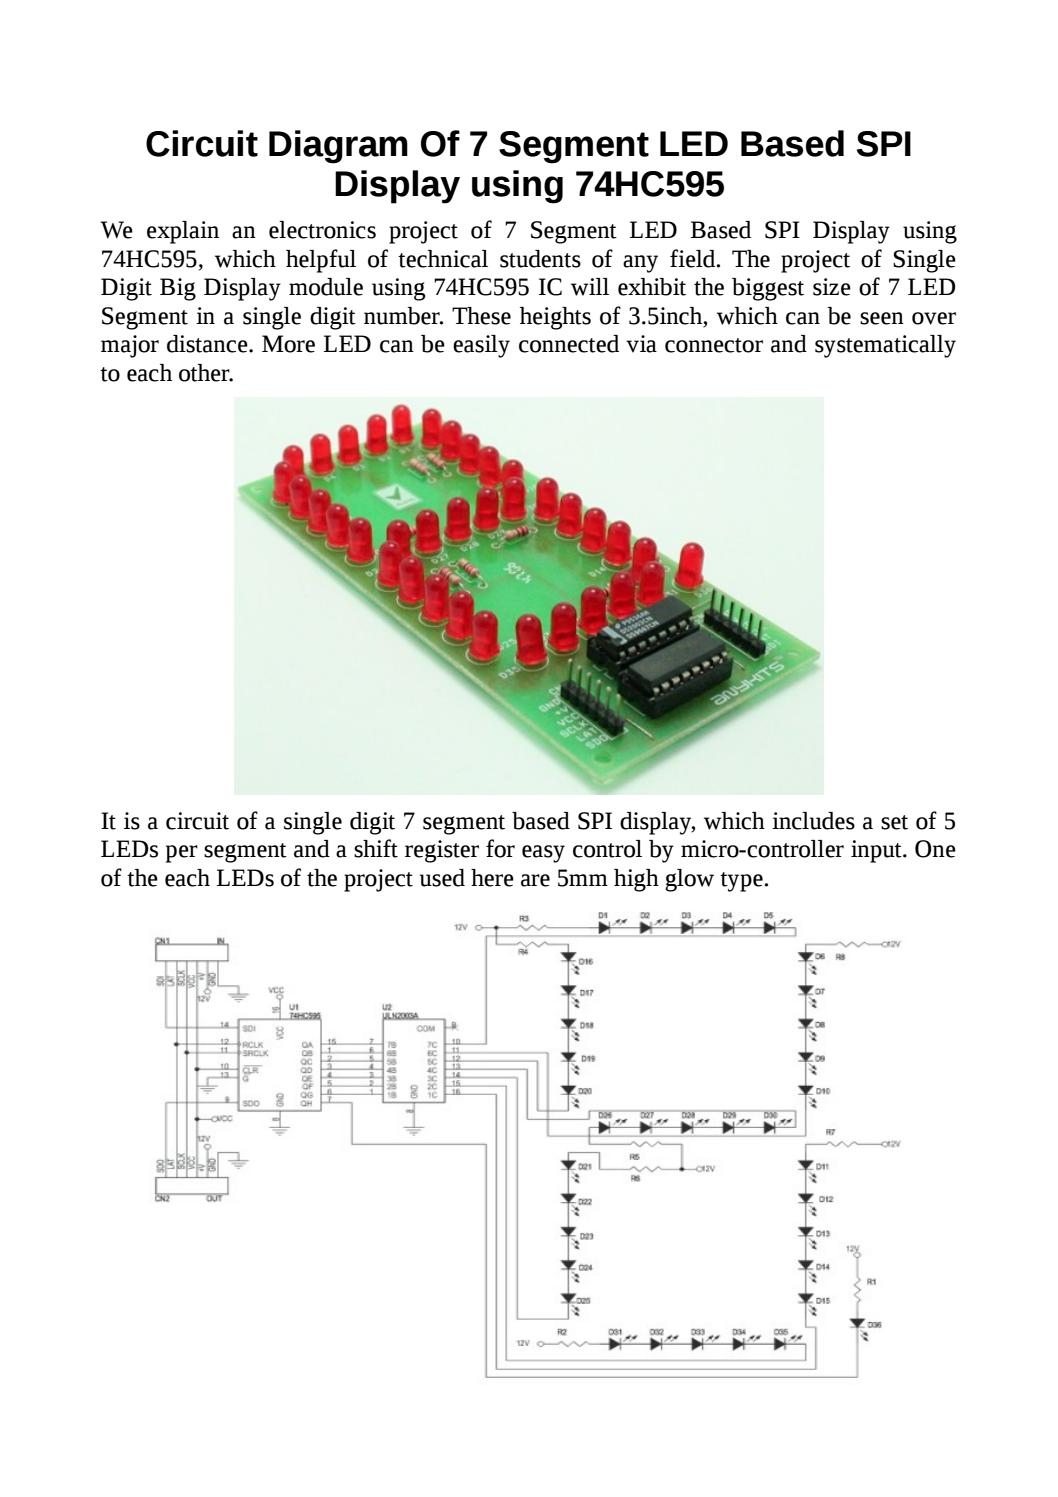 hight resolution of circuit diagram of 7 segment led based spi display using 74hc595 by techieshop issuu